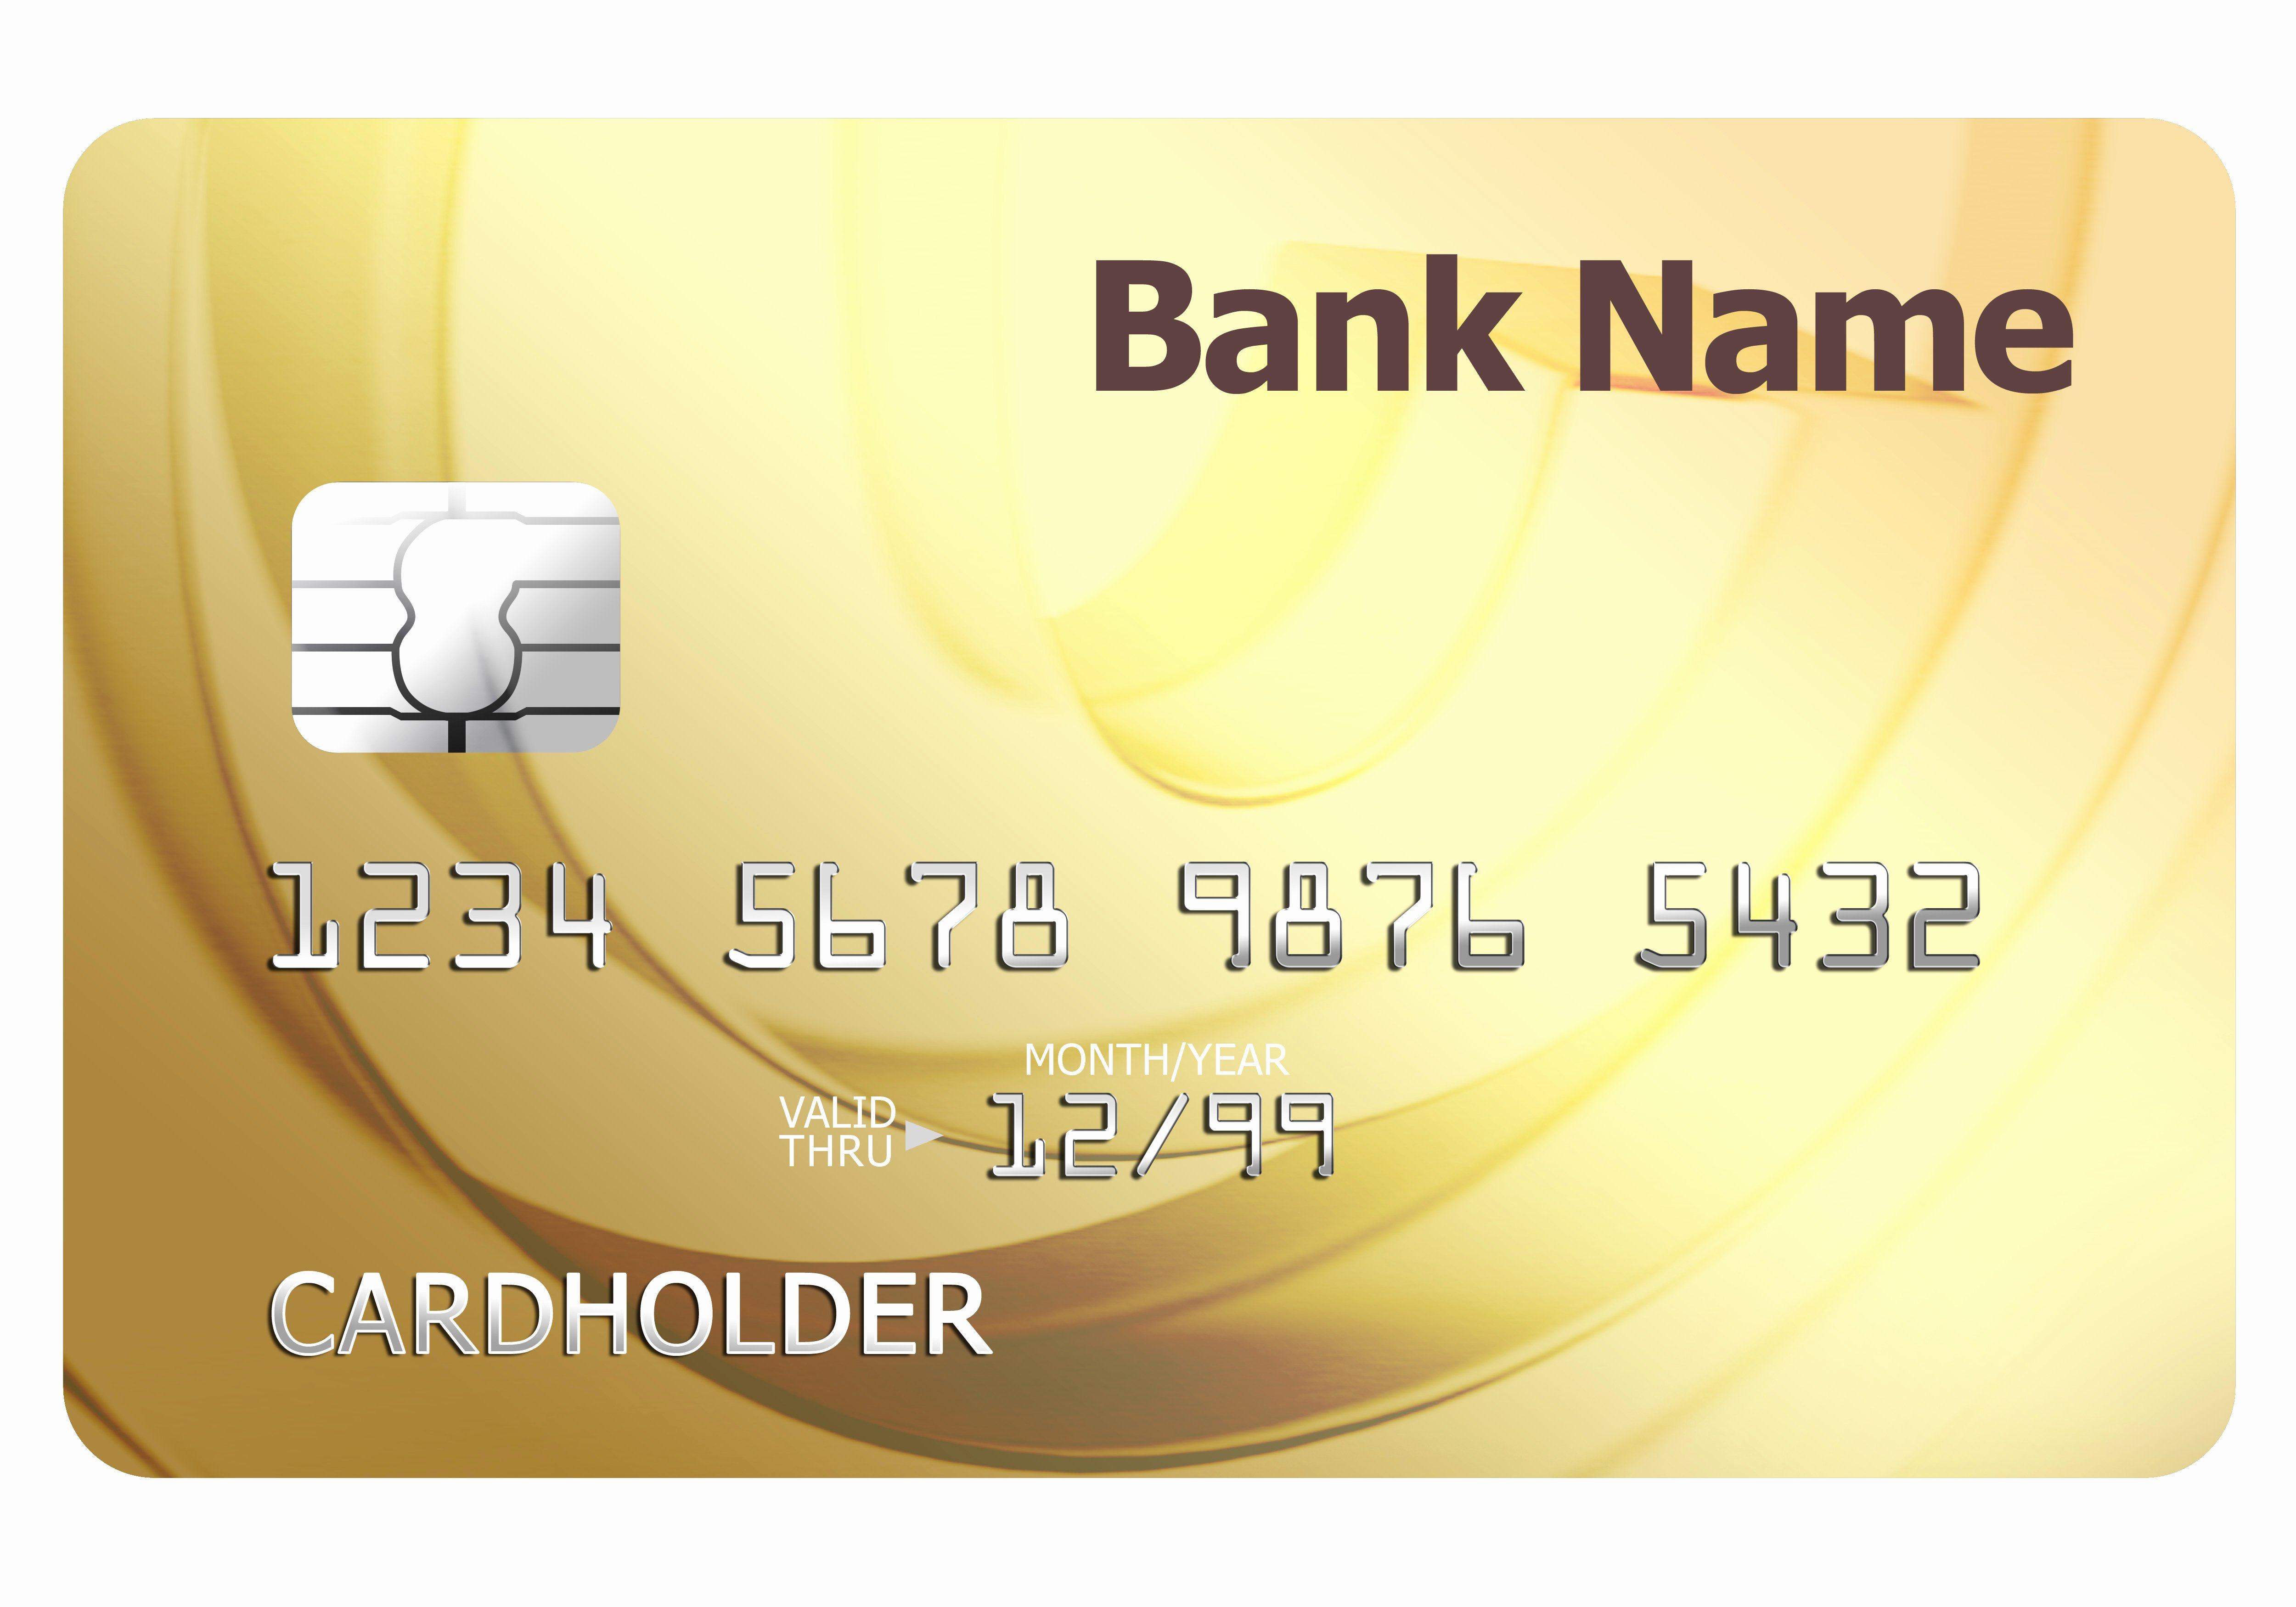 Blank Credit Card Template Elegant Credit Card Template